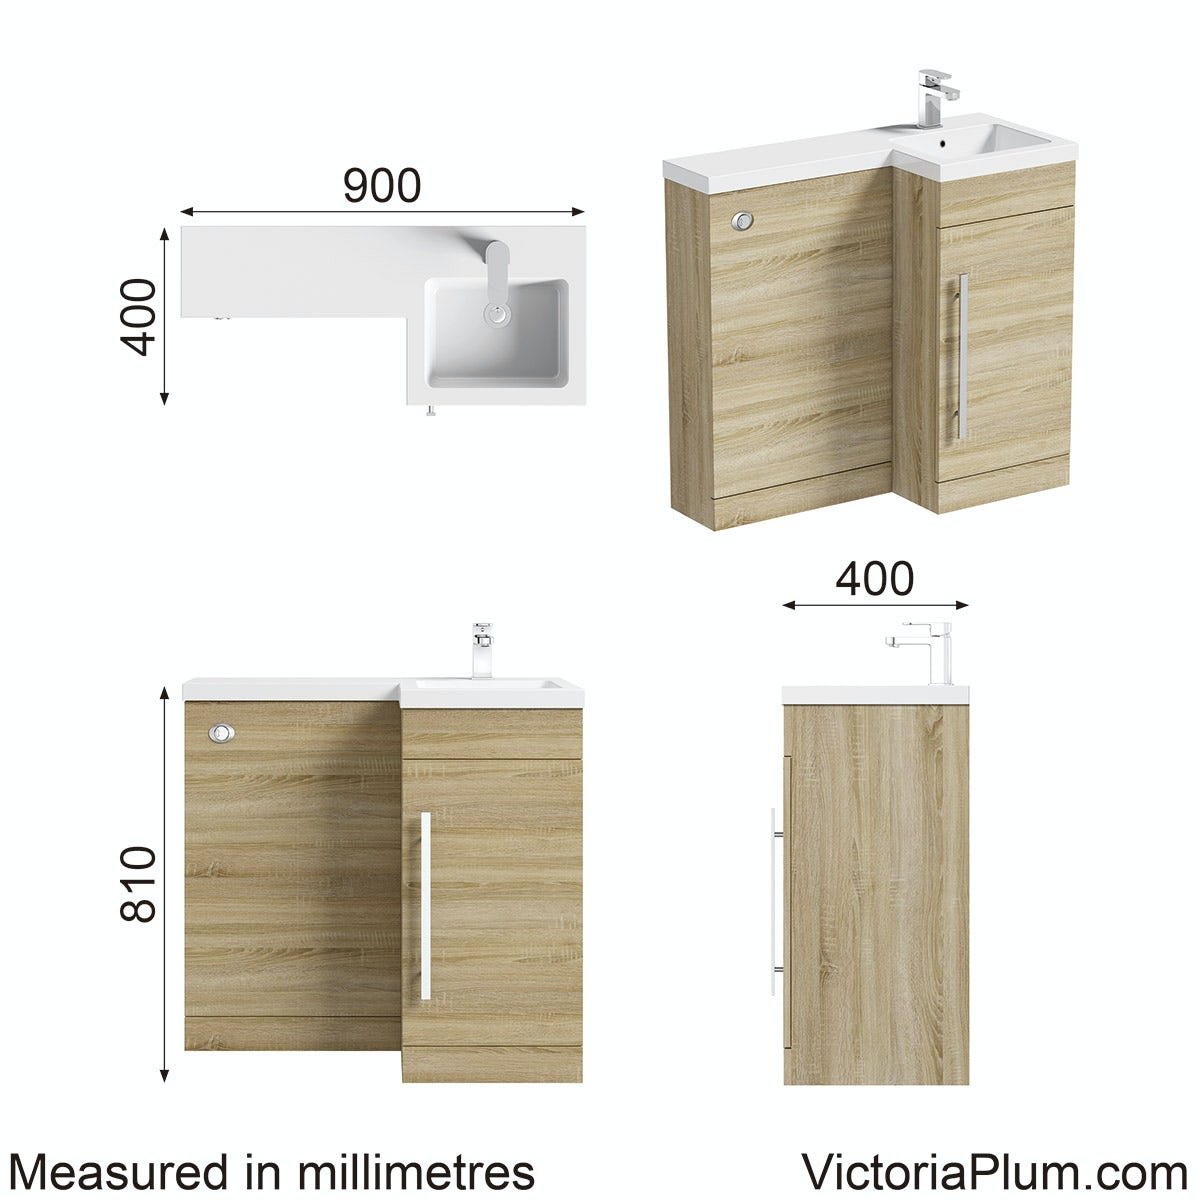 Dimensions for MySpace oak right handed unit including concealed cistern